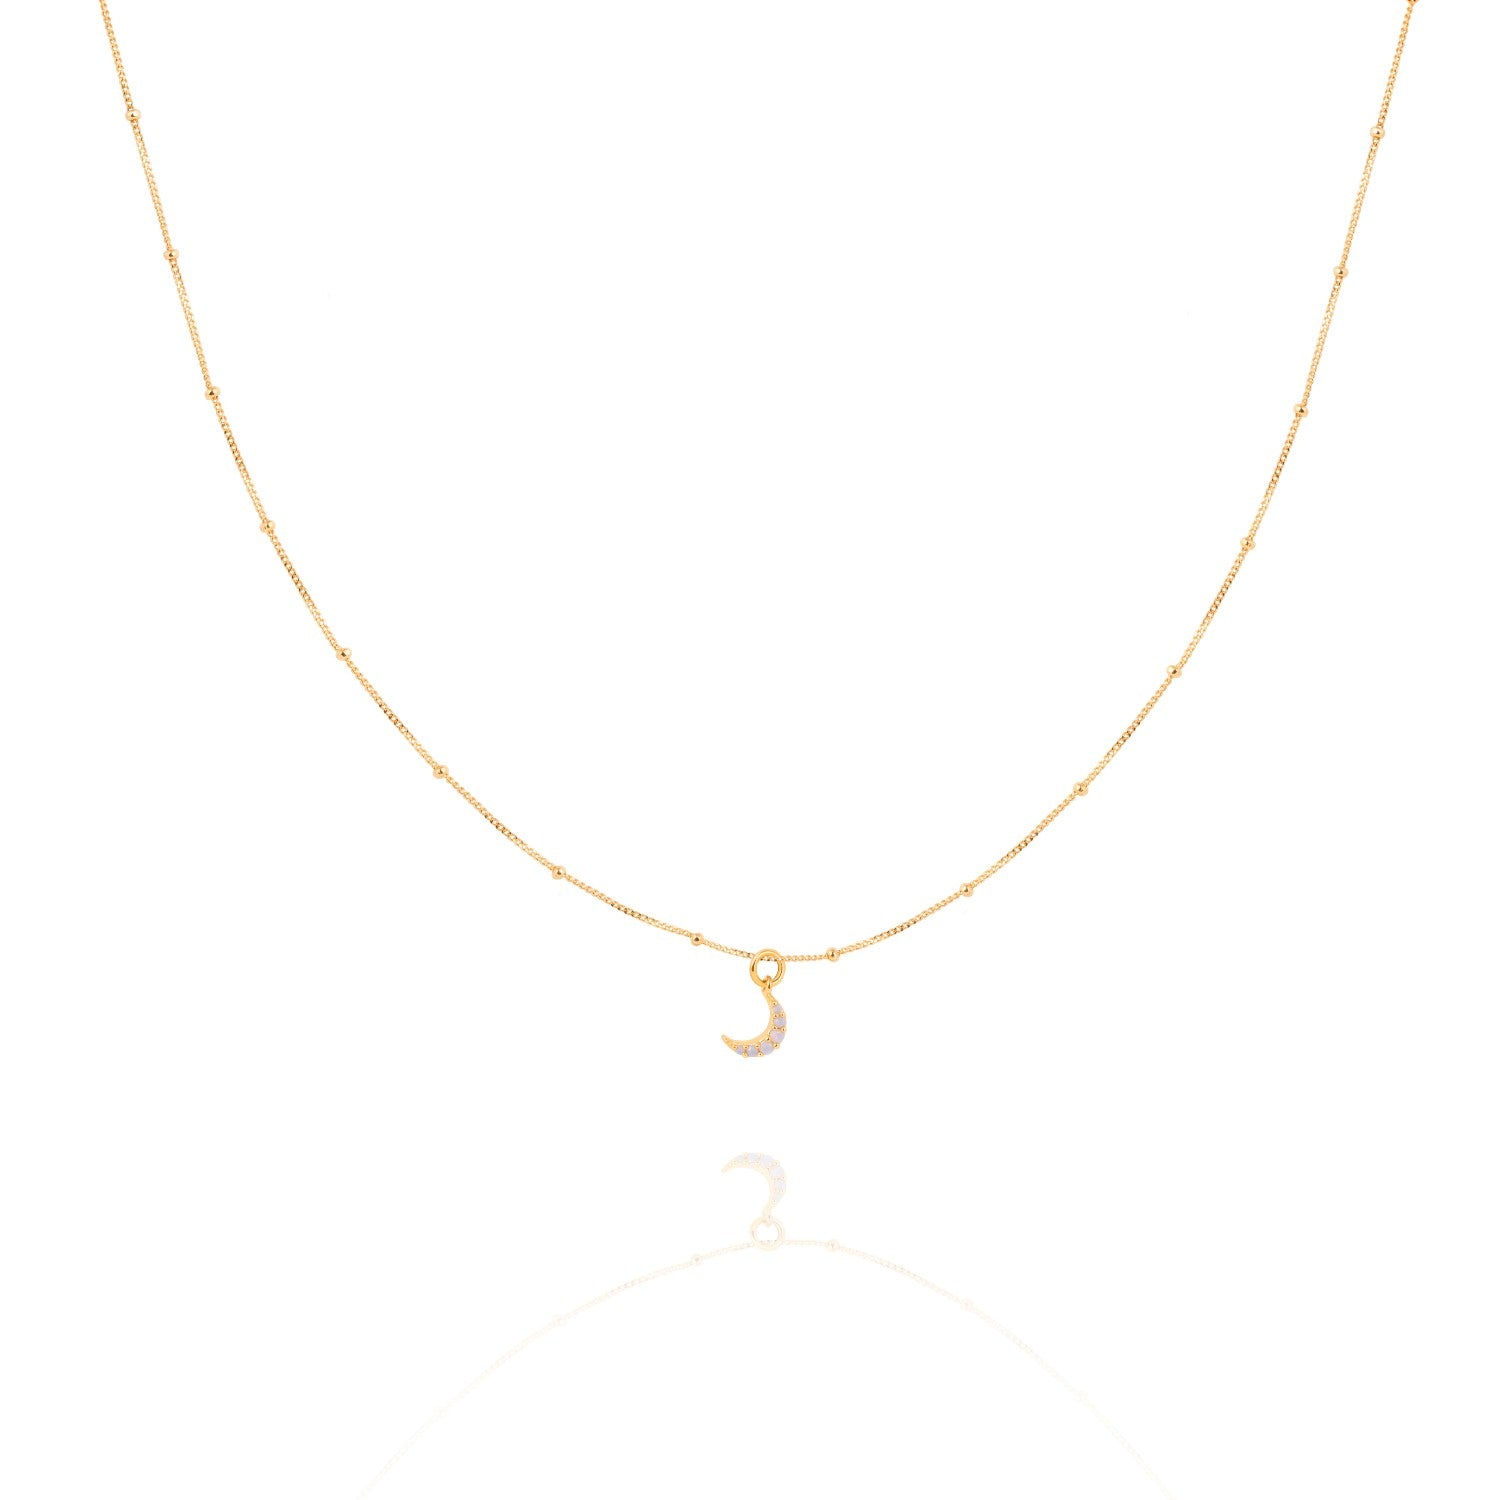 Astrid & Miyu - Mystic Moon Necklace - Gold